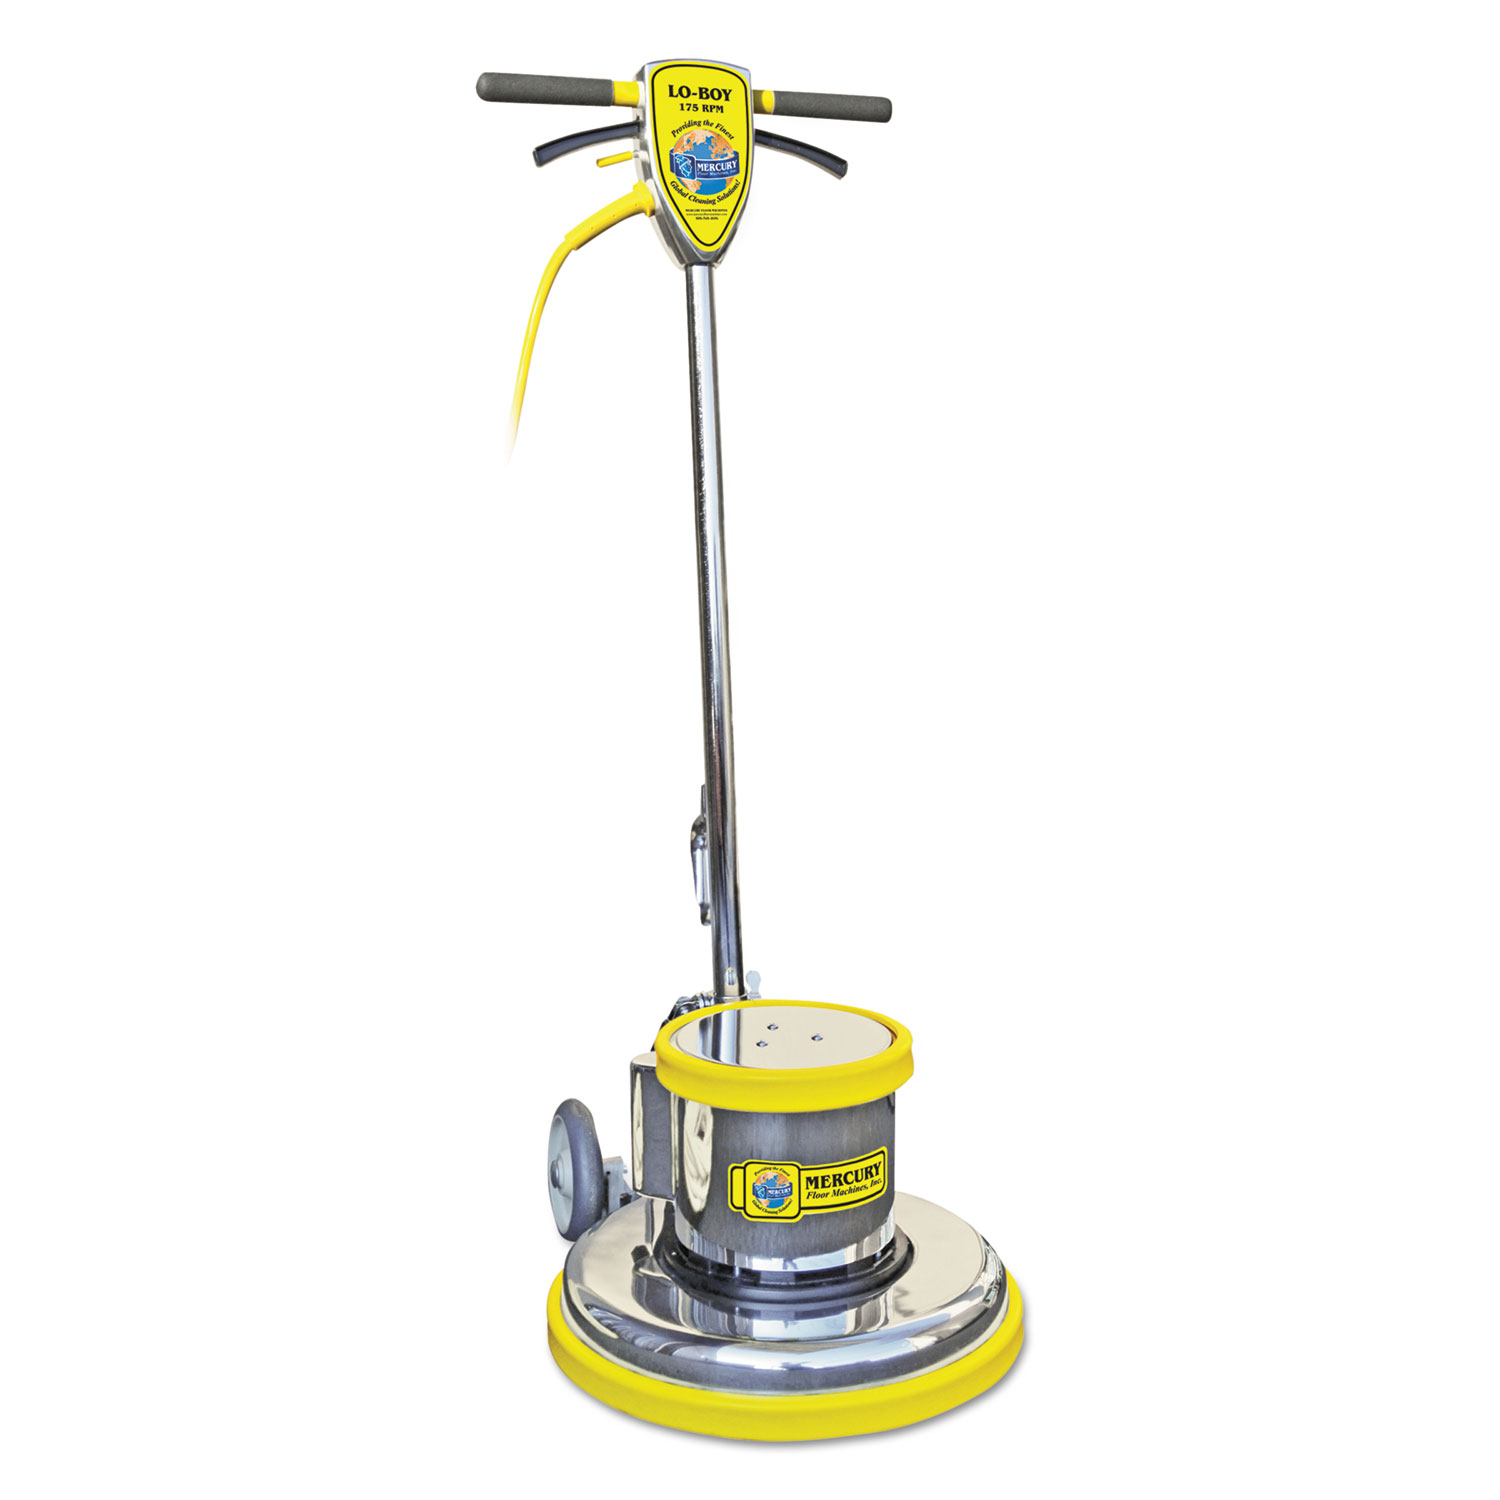 PRO-175-15 Floor Machine, 1.5 HP, 175 RPM, 14 Brush Diameter